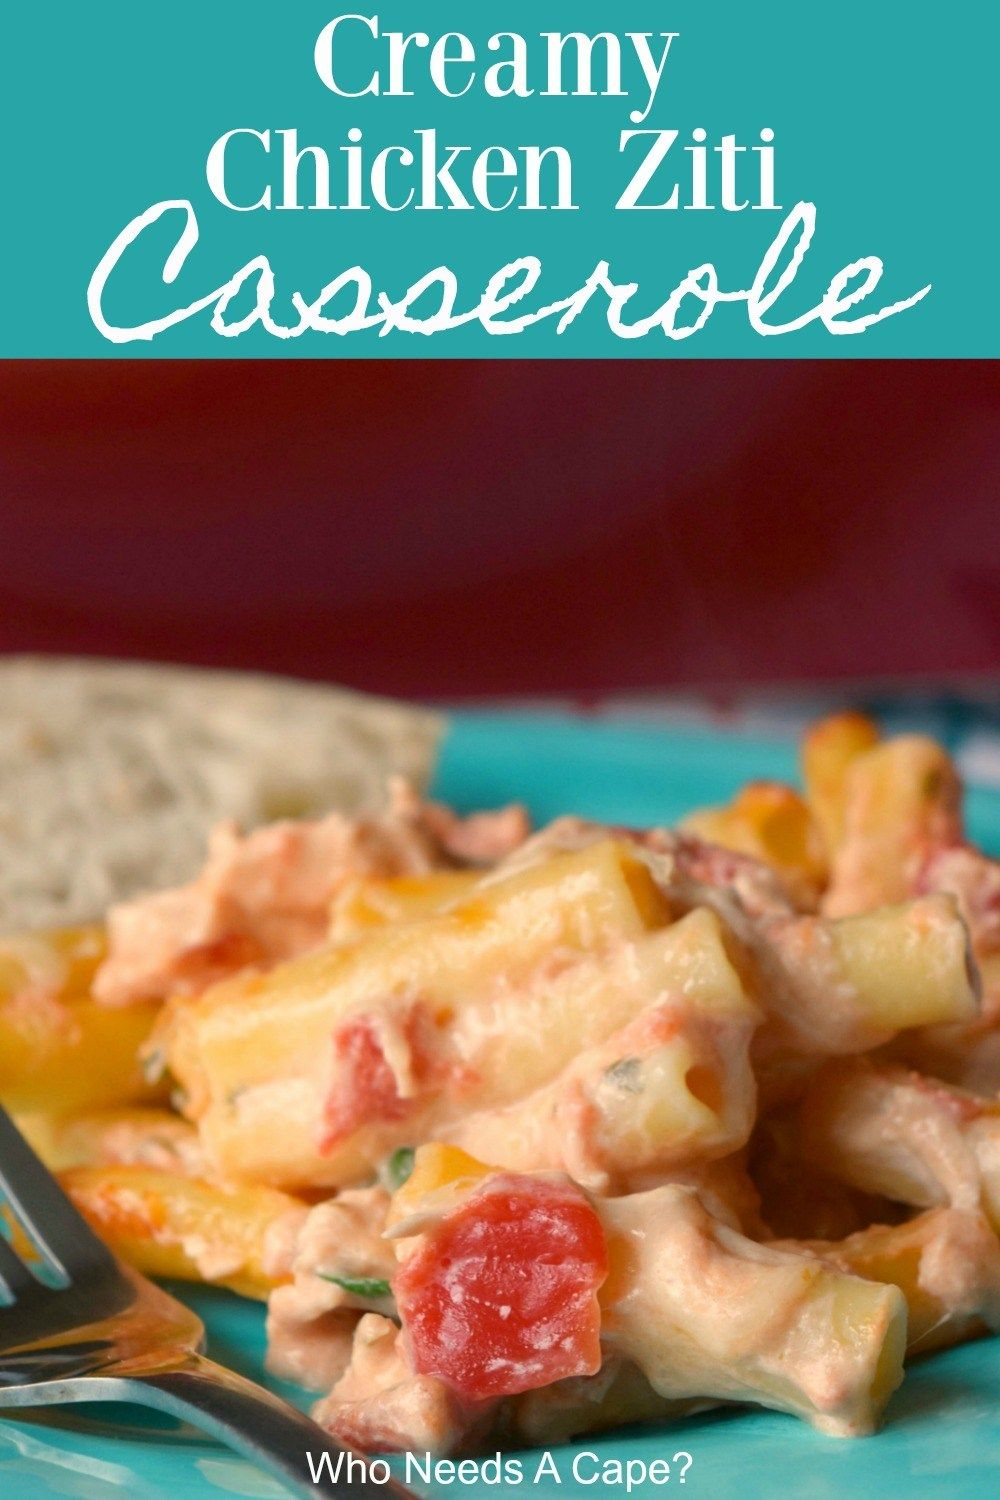 Bring Creamy Chicken Ziti Casserole to the dinner table, you'll get rave reviews. Loaded with diced tomatoes, spinach, and cheese, it is delish! #creamychickencasserole